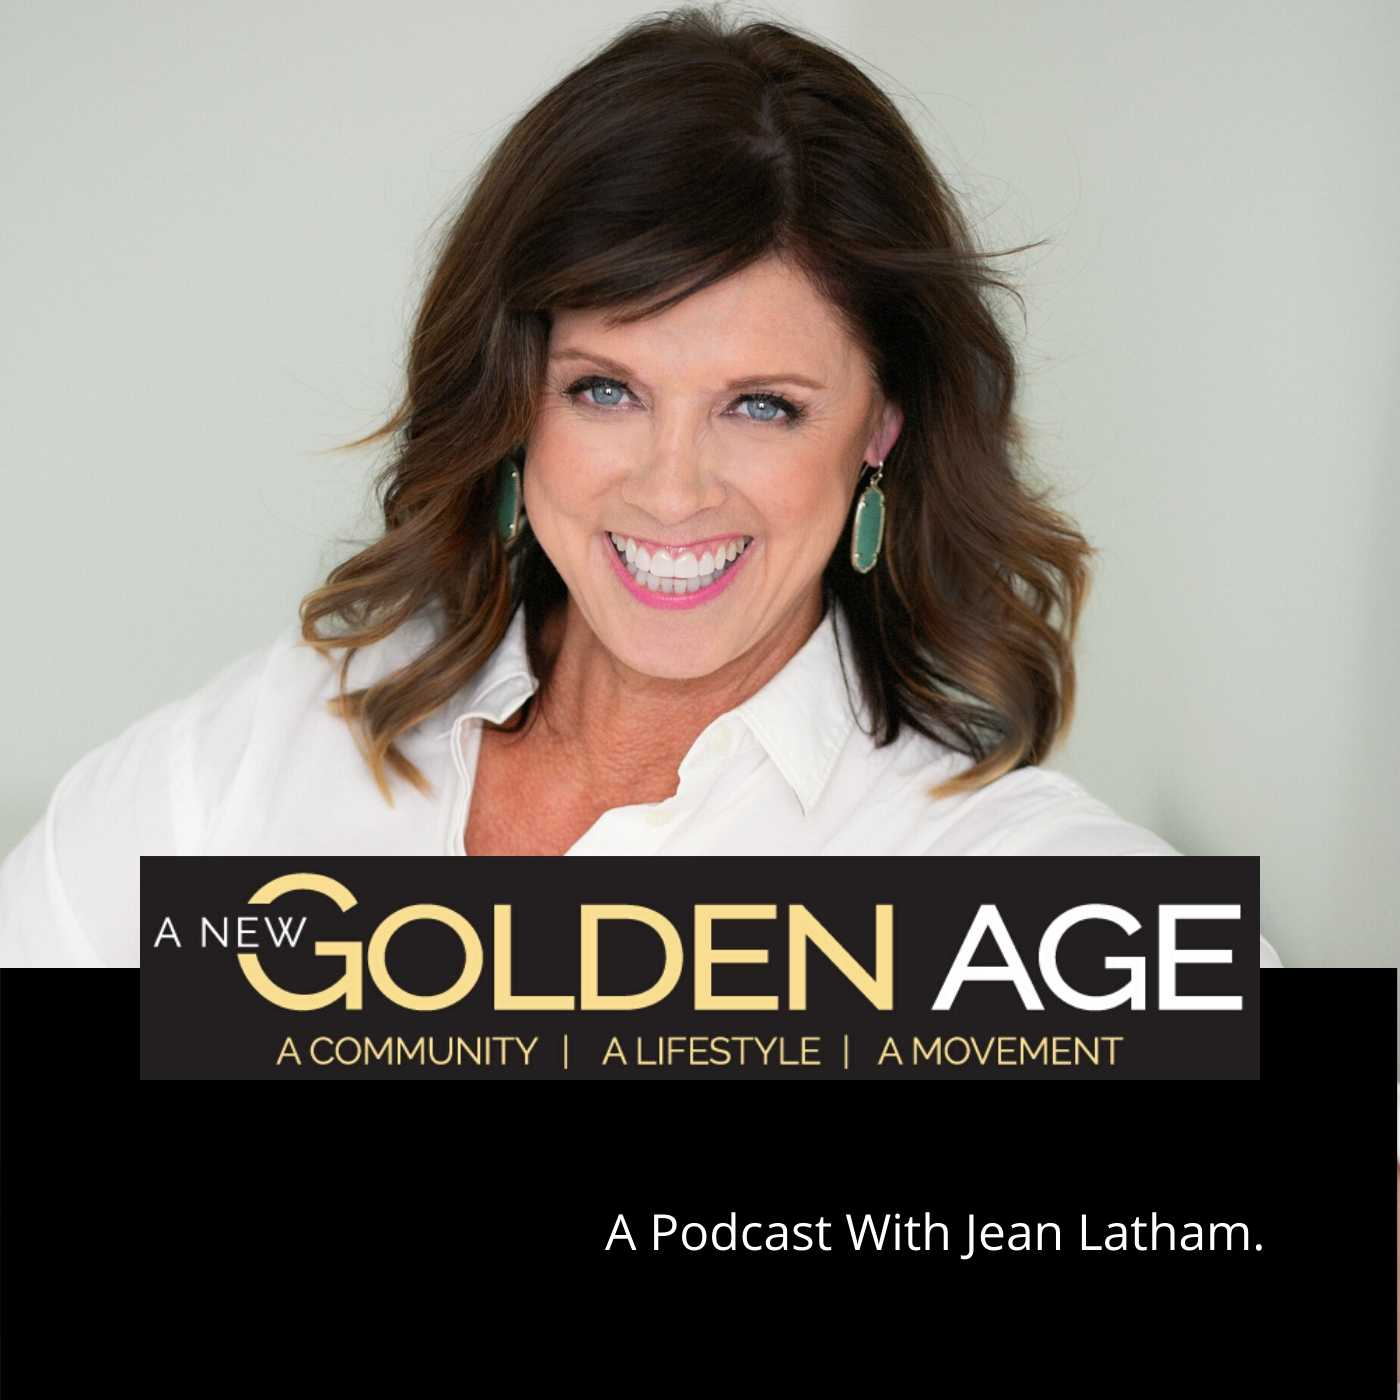 A New Golden Age Podcast show art